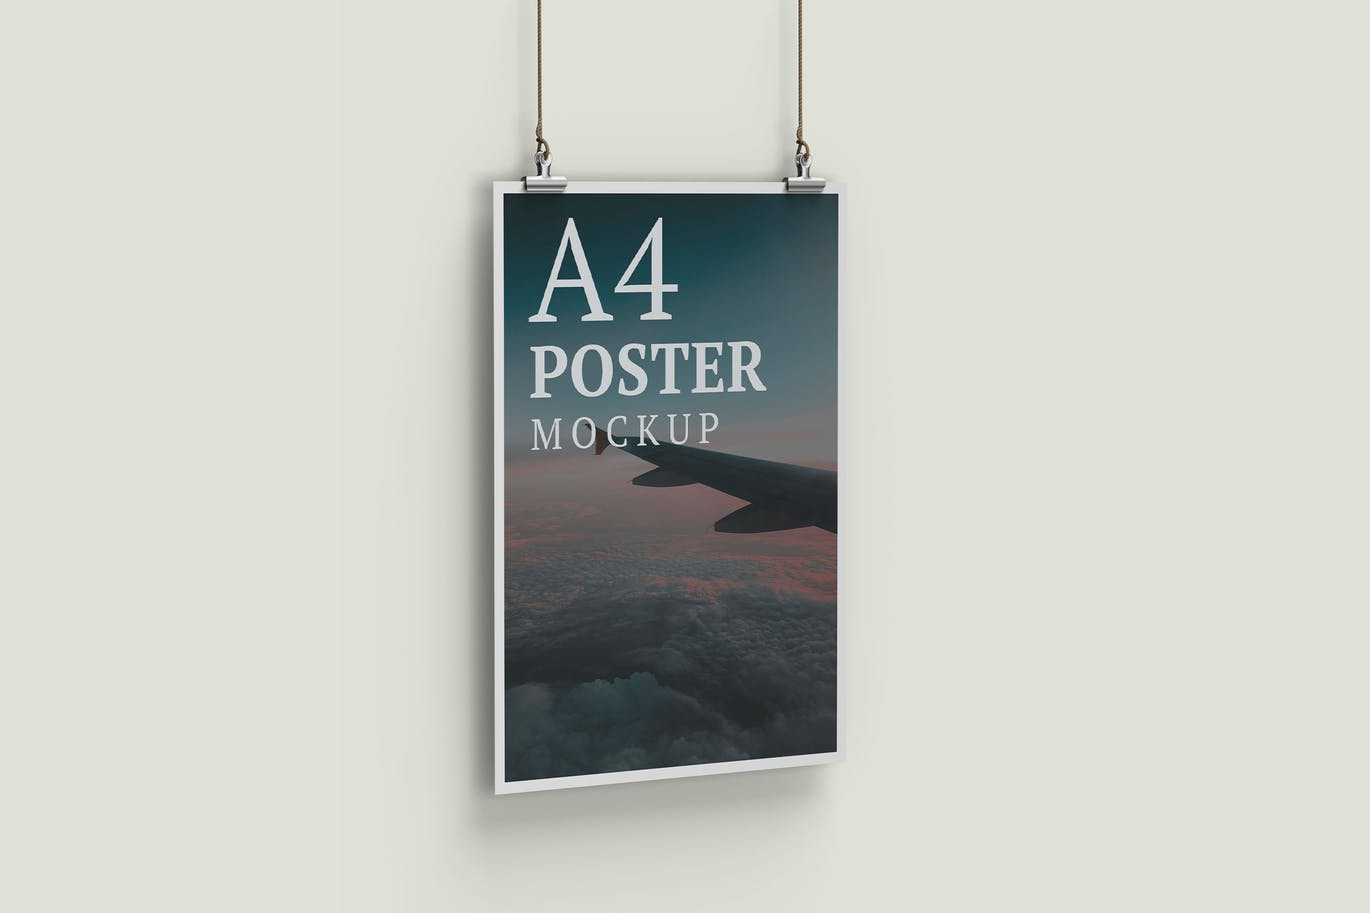 A4 Poster Mockup Left View